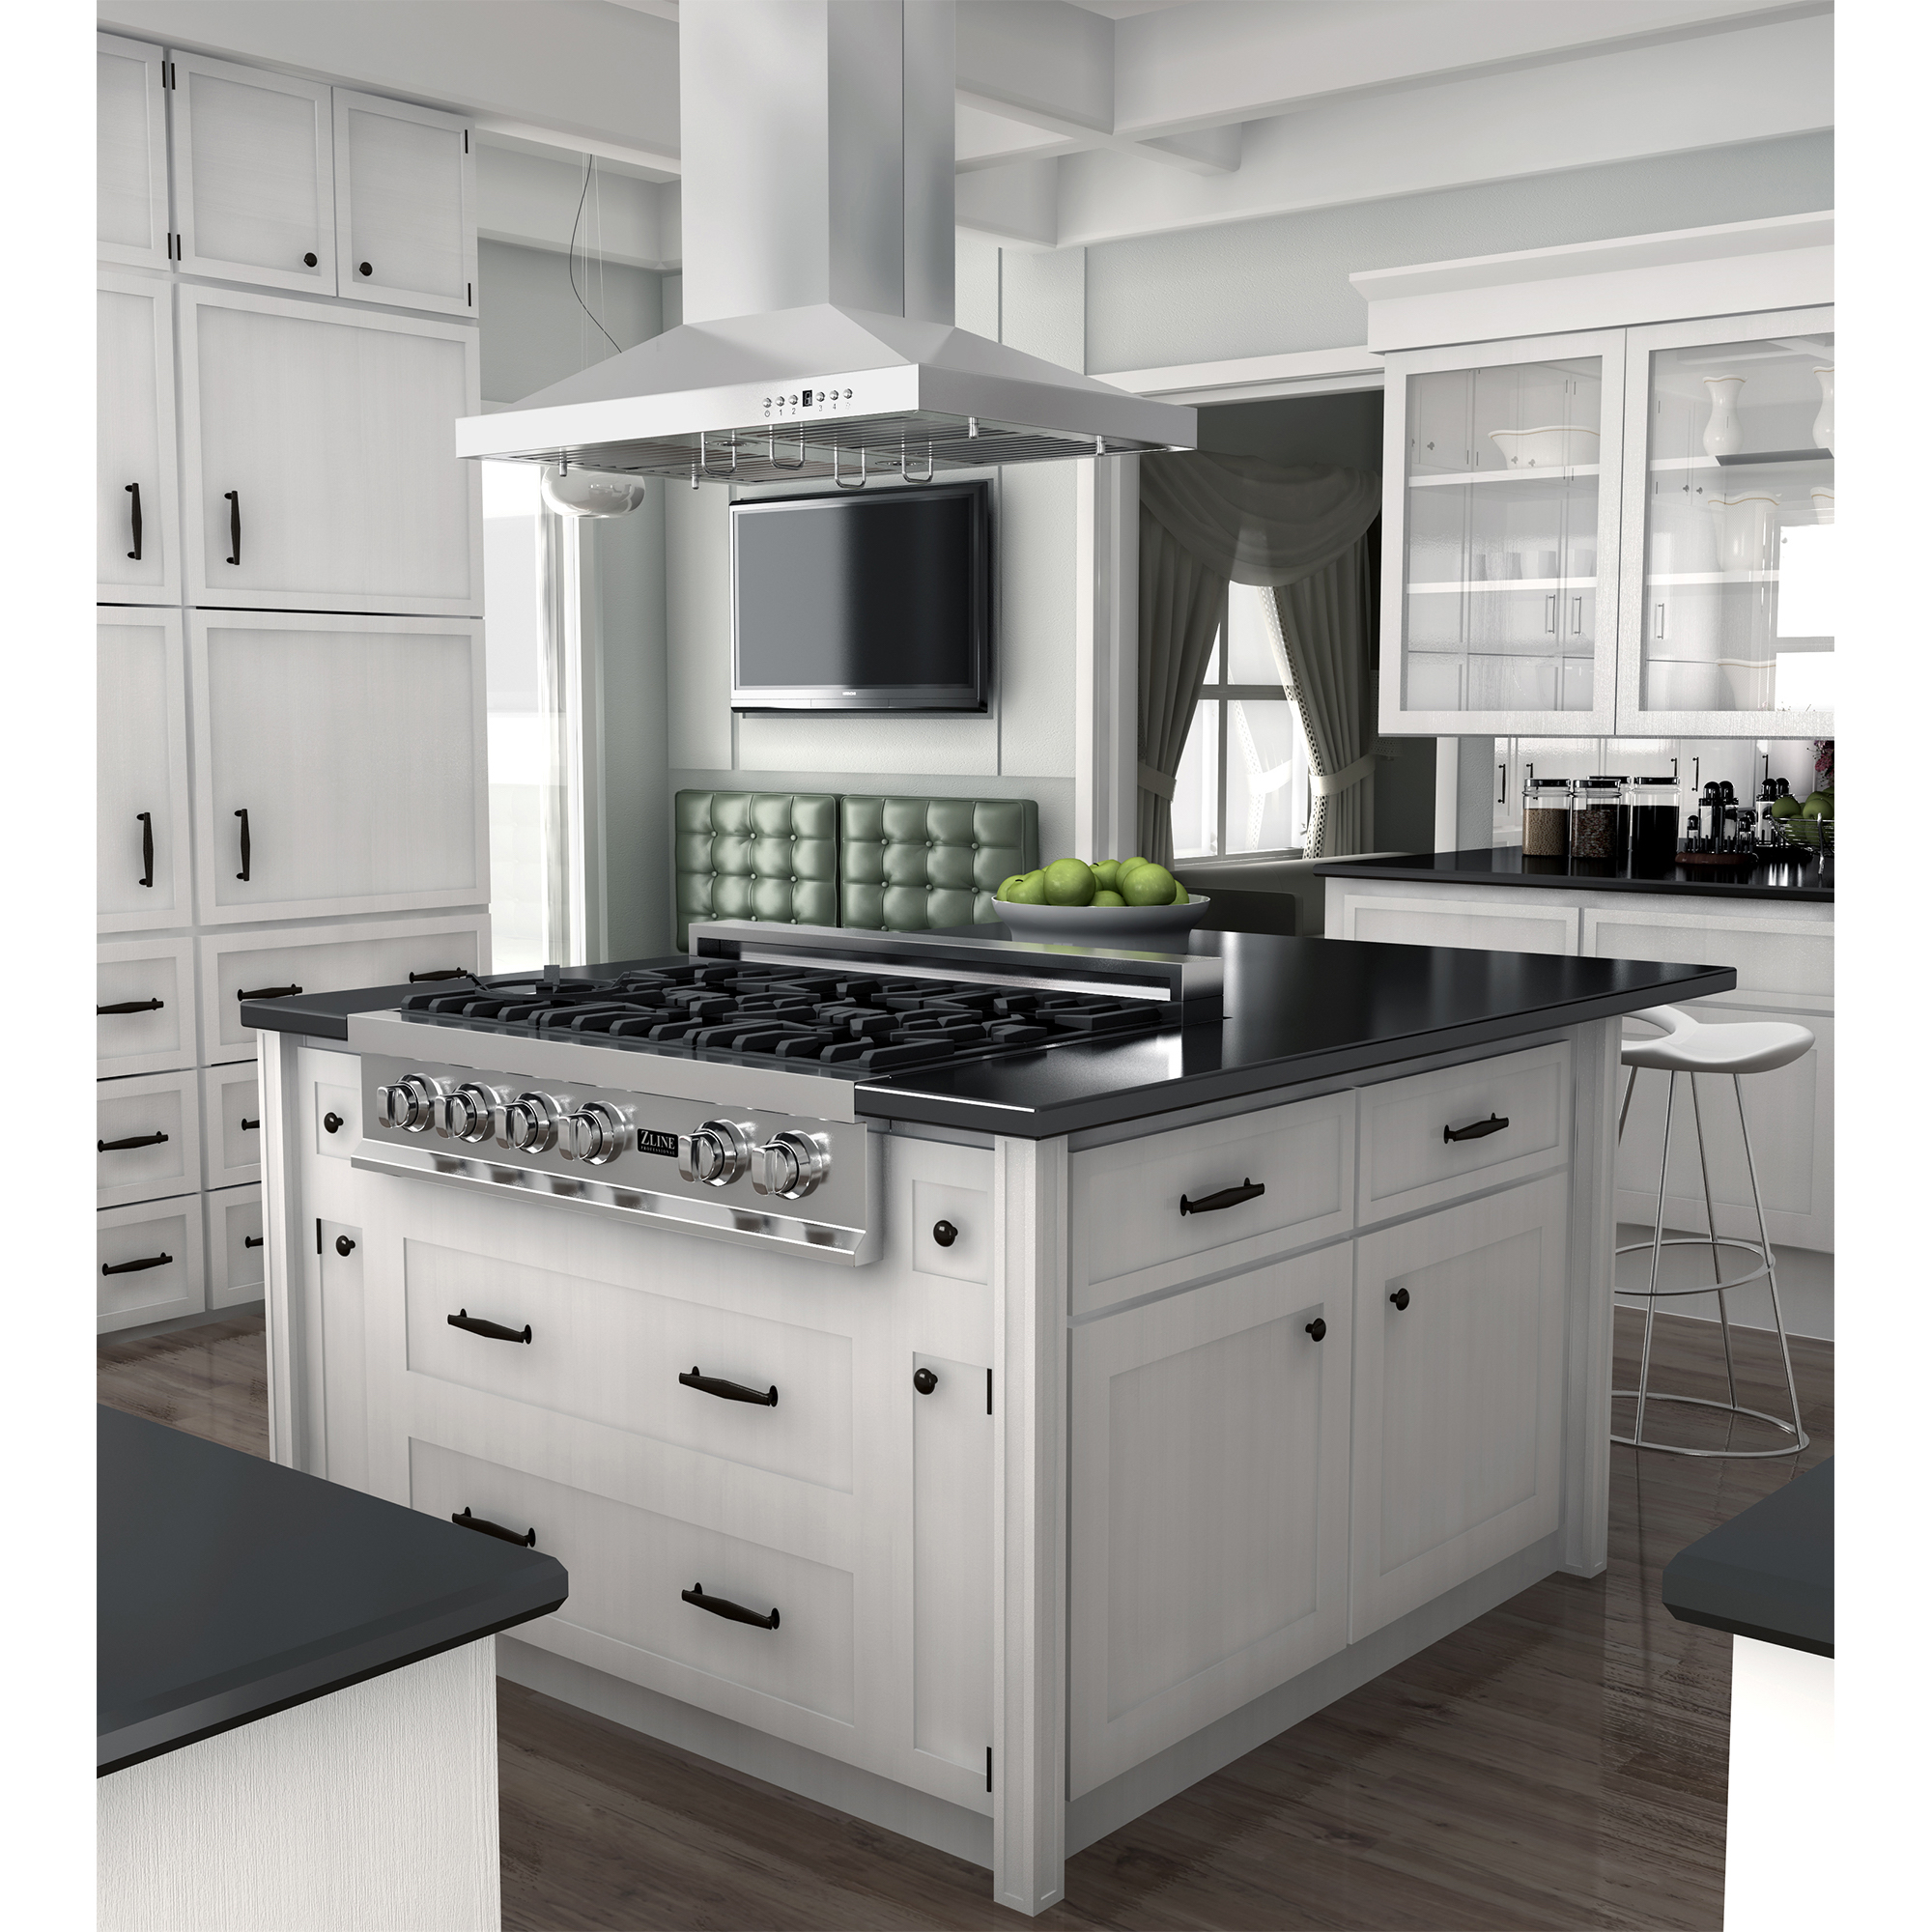 zline-stainless-steel-island-range-hood-GL2i-kitchen-new-1-seam.jpg